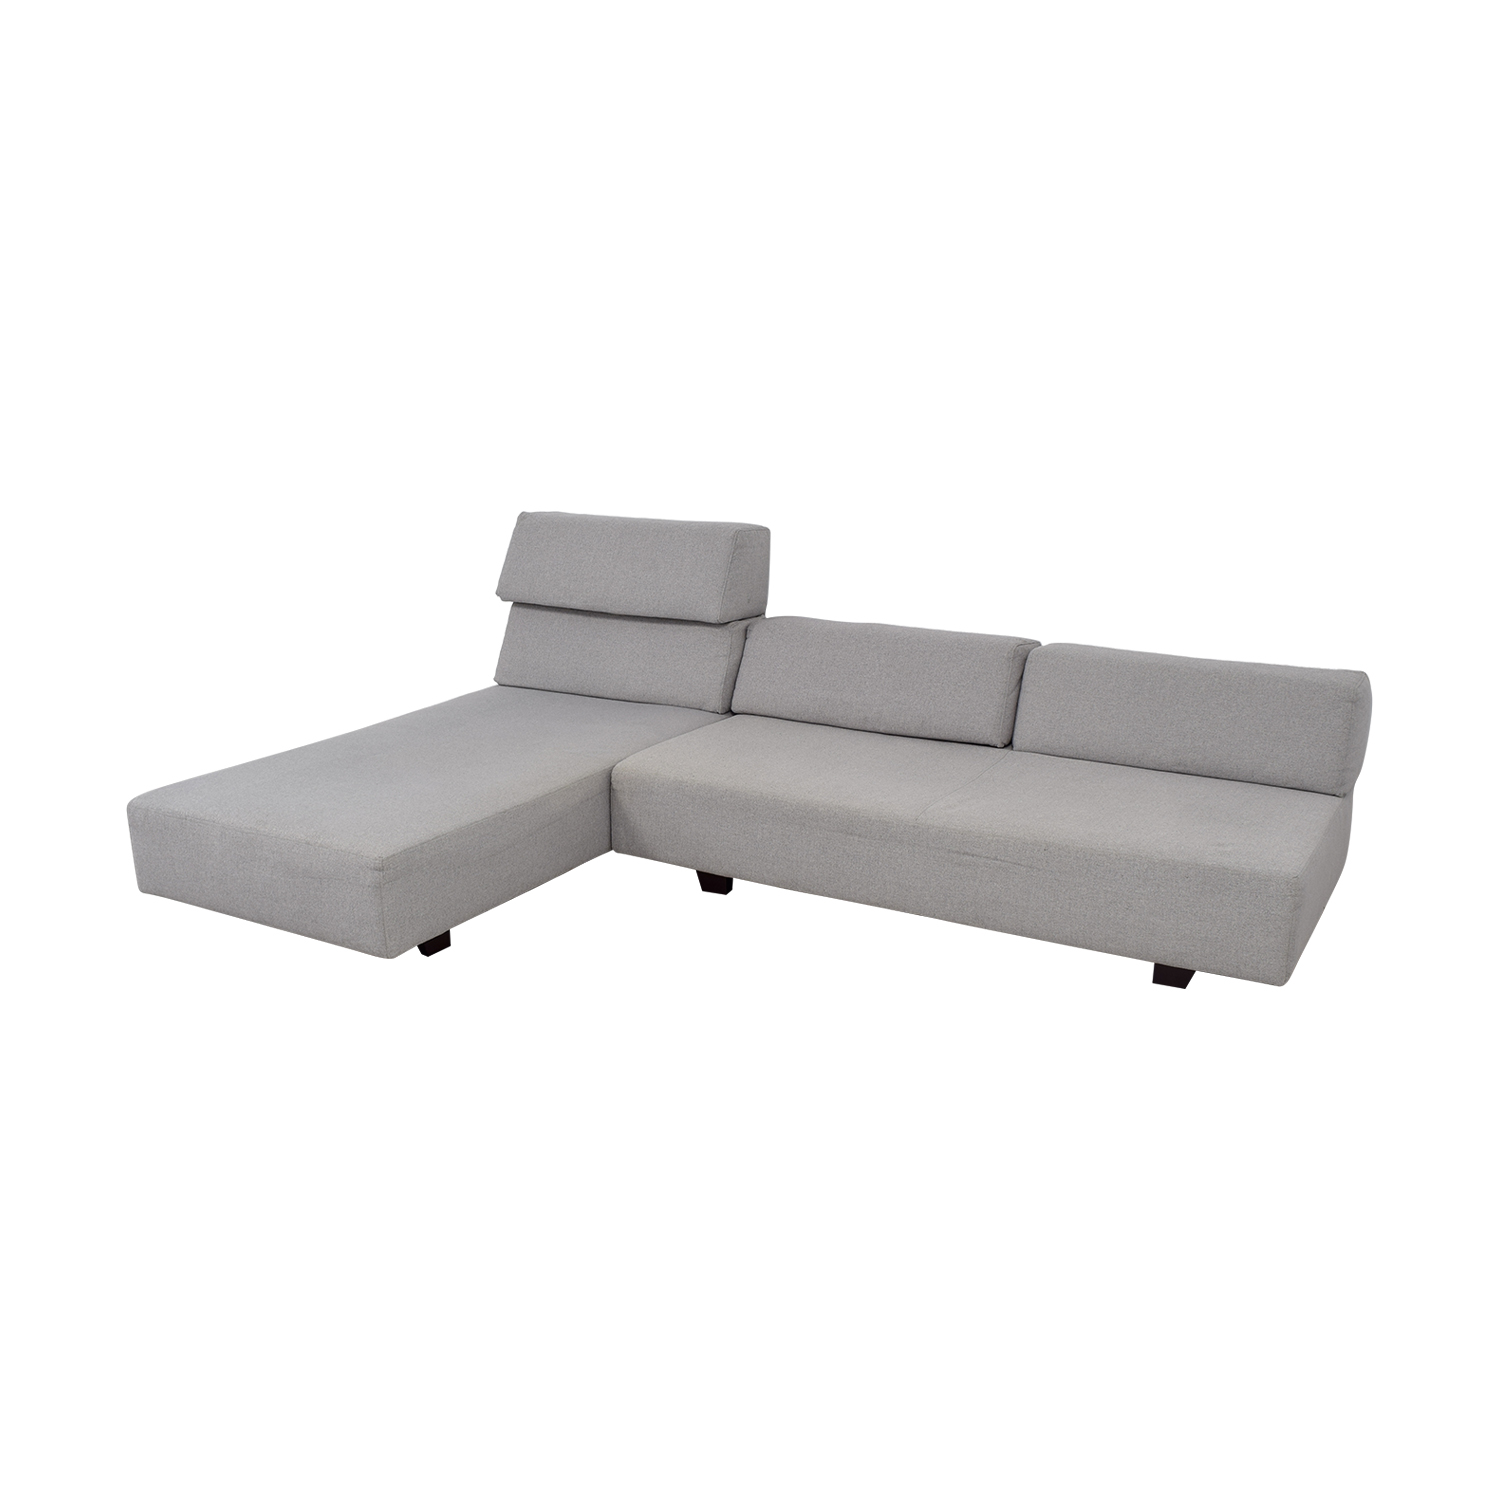 ... West Elm West Elm Tillary Chenille Tweed Feather Gray Modular Seating  Sofa For Sale ...